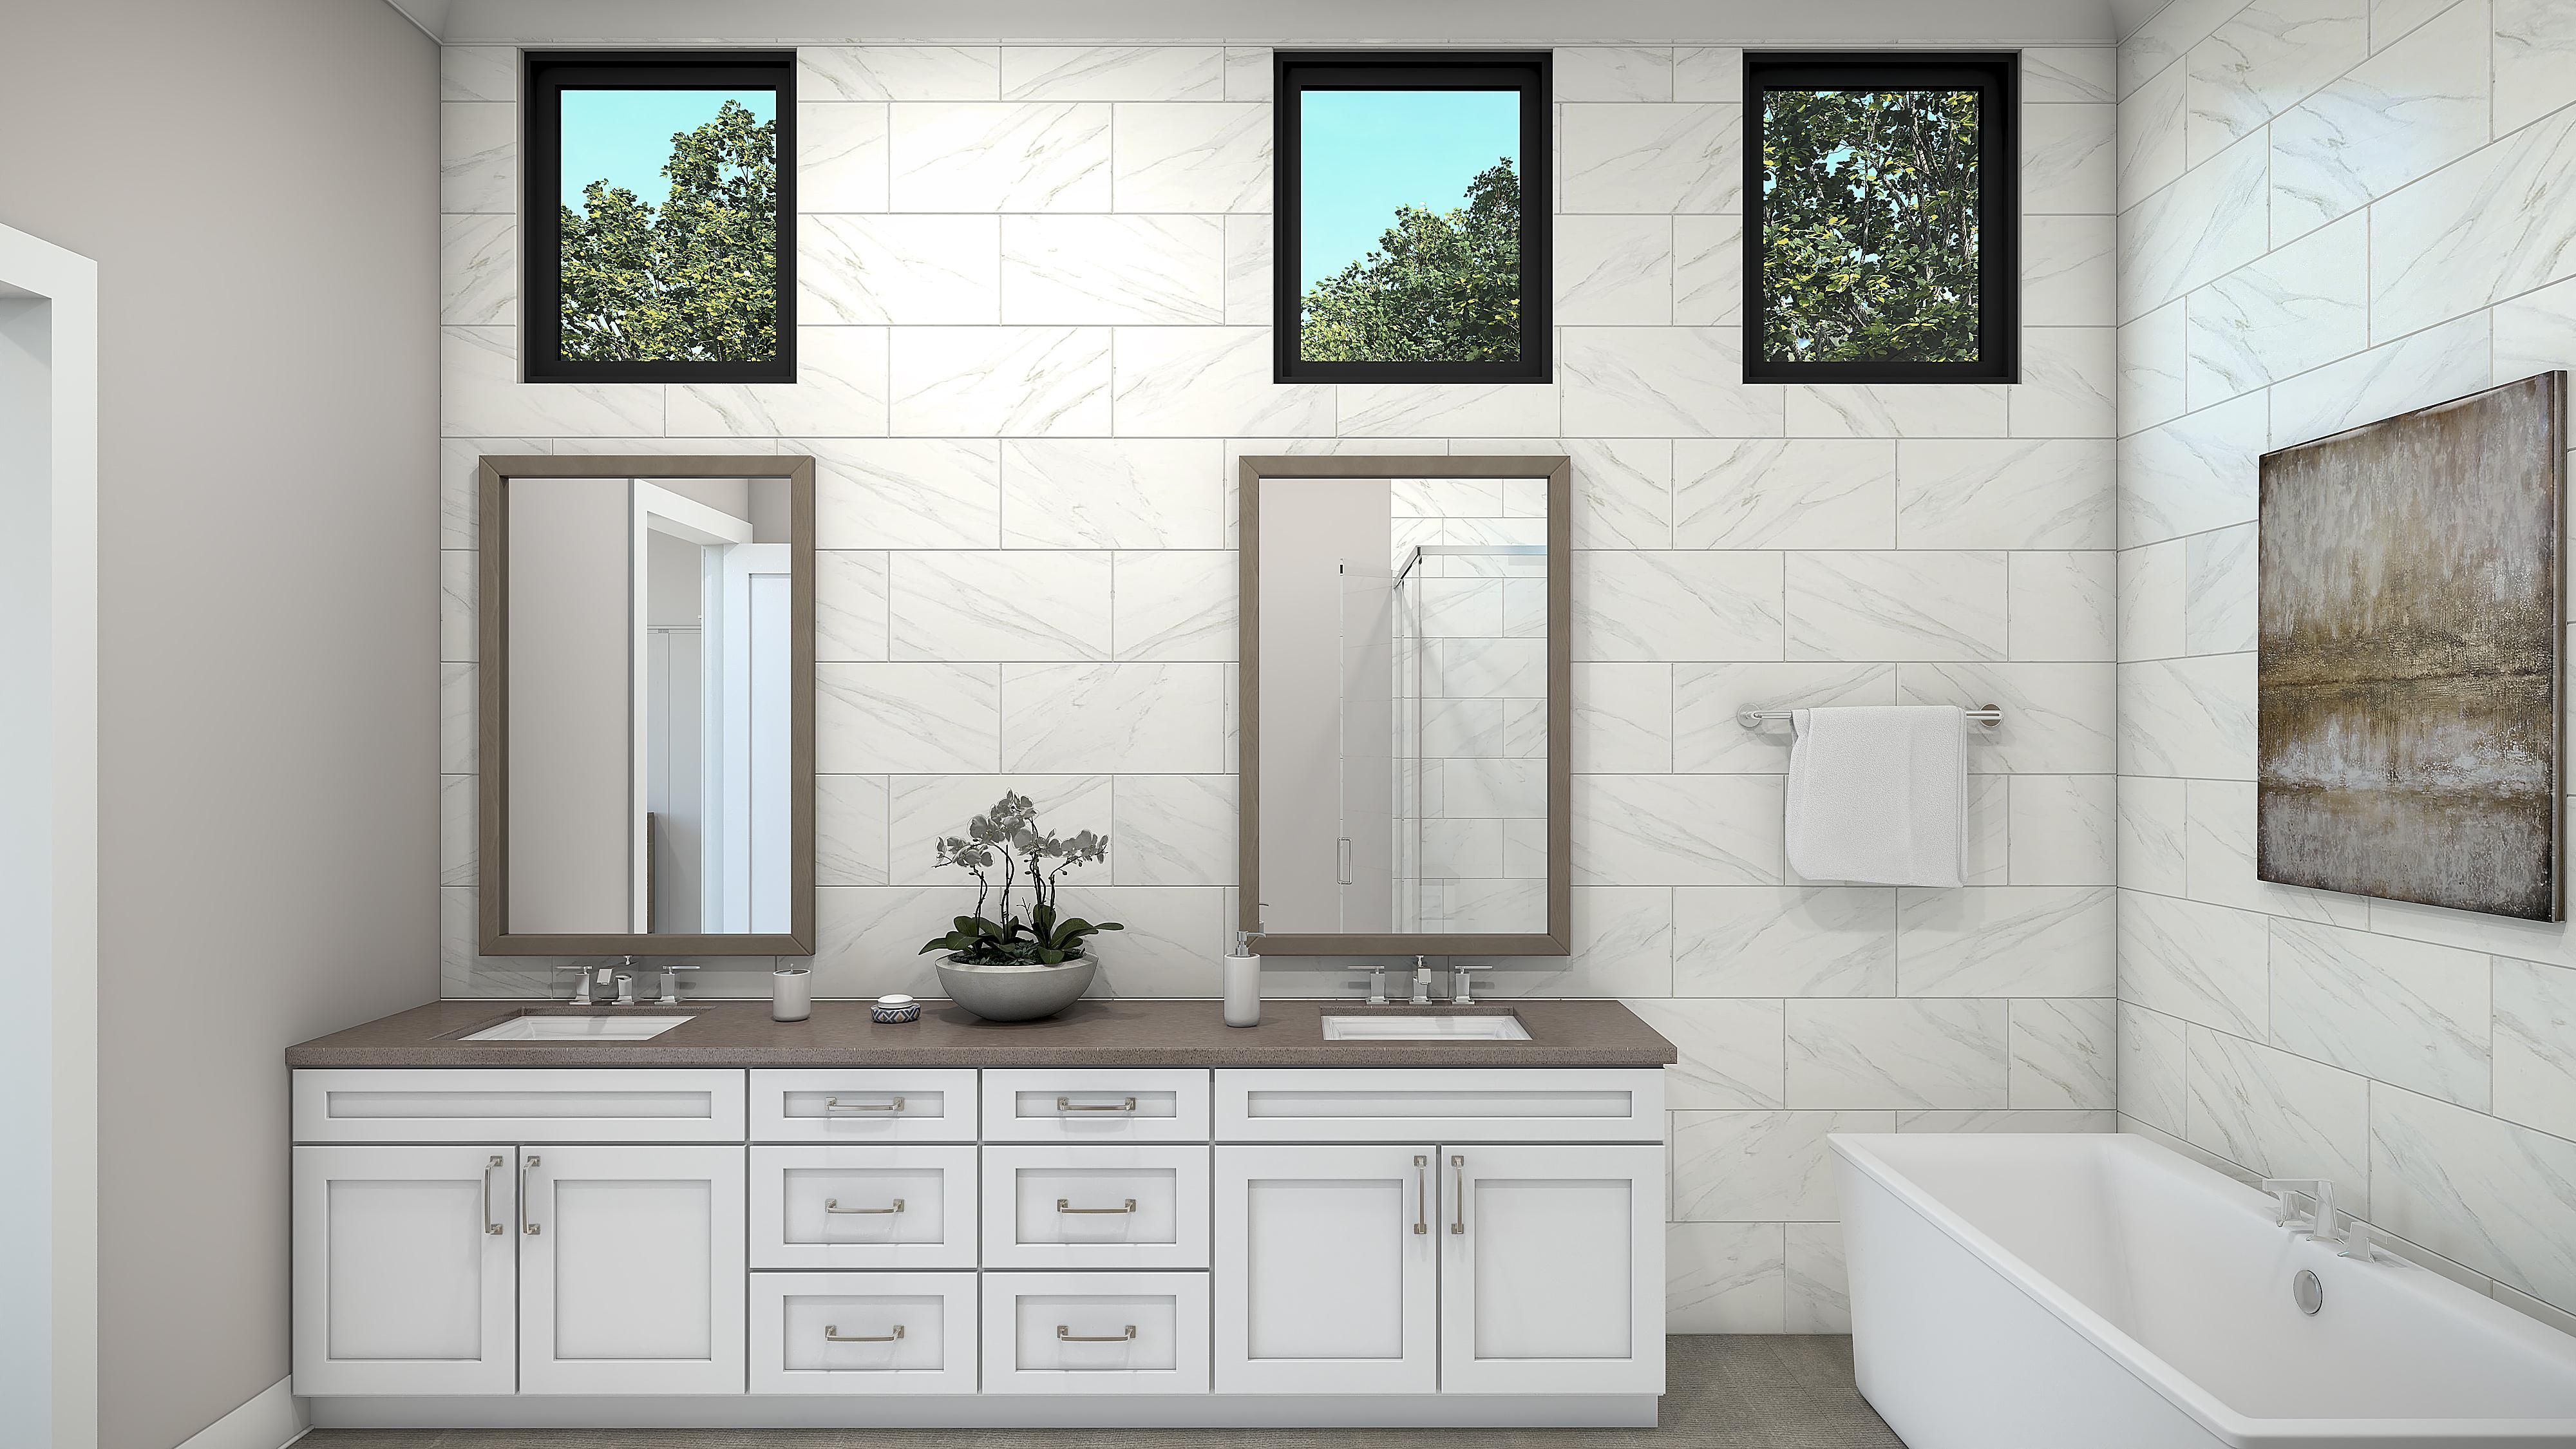 Bathroom featured in the Plan 3-C By Copper Valley  in Stockton-Lodi, CA